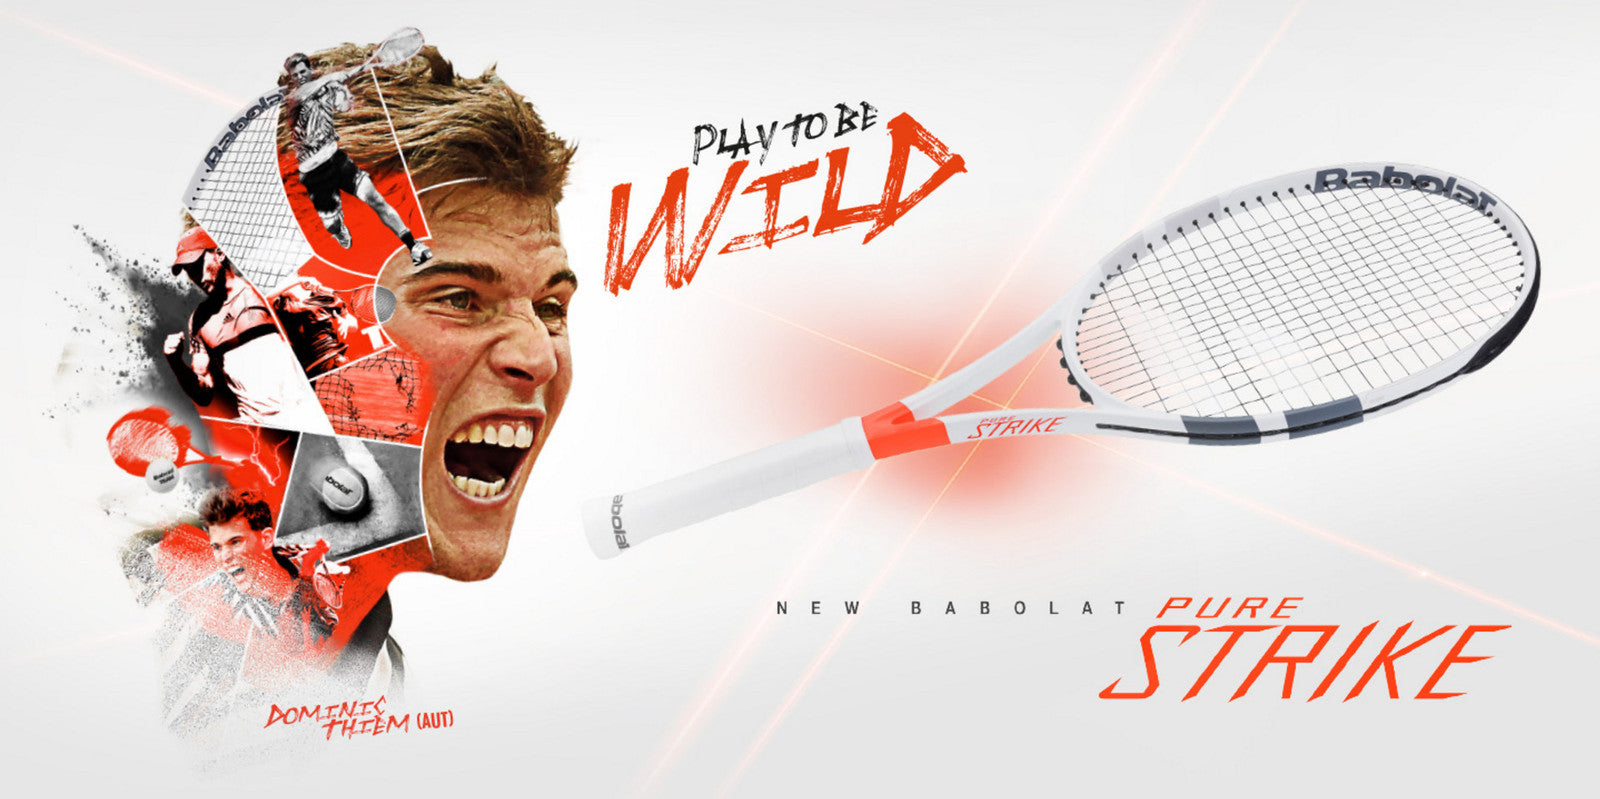 Your Racket Sport Specialist: Tennis, Badminton, Squash & Racketball